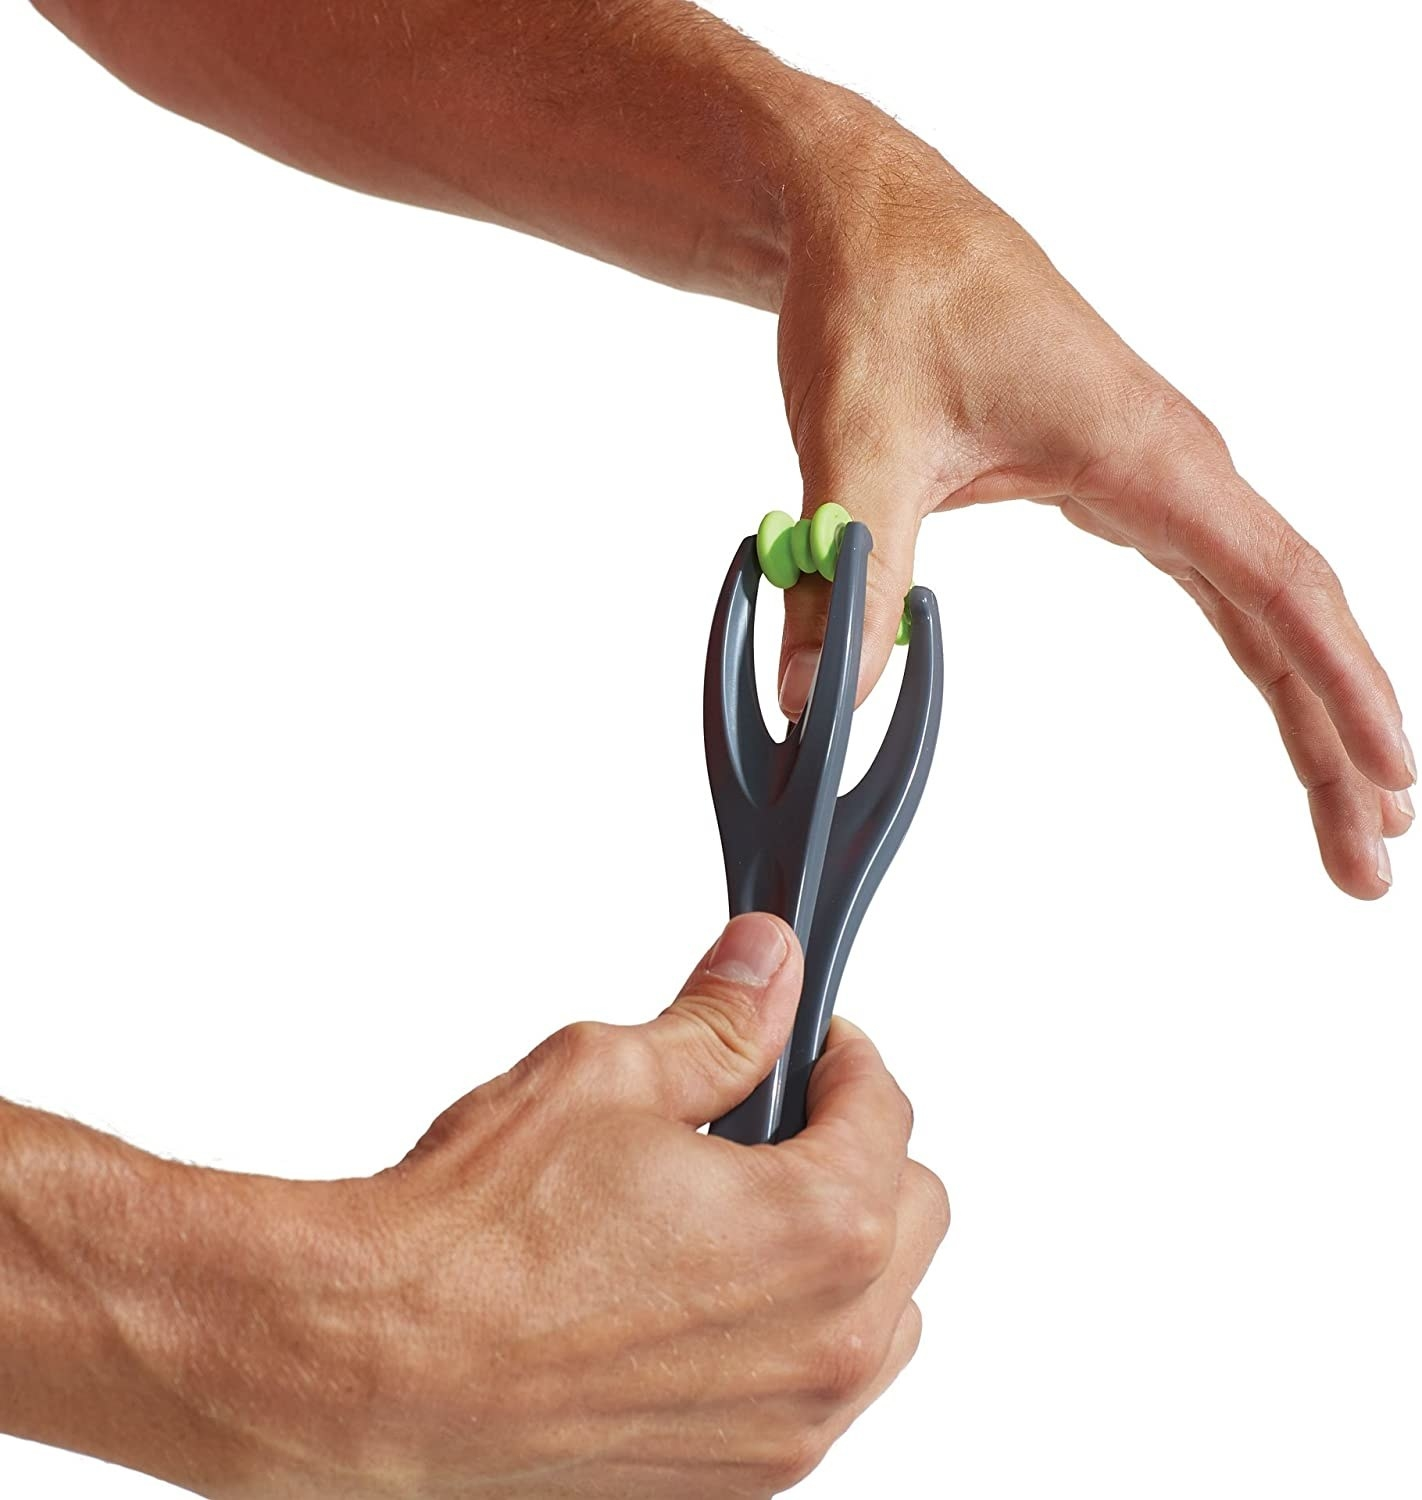 person using clamp-like massager with balls on the end to massage thumb